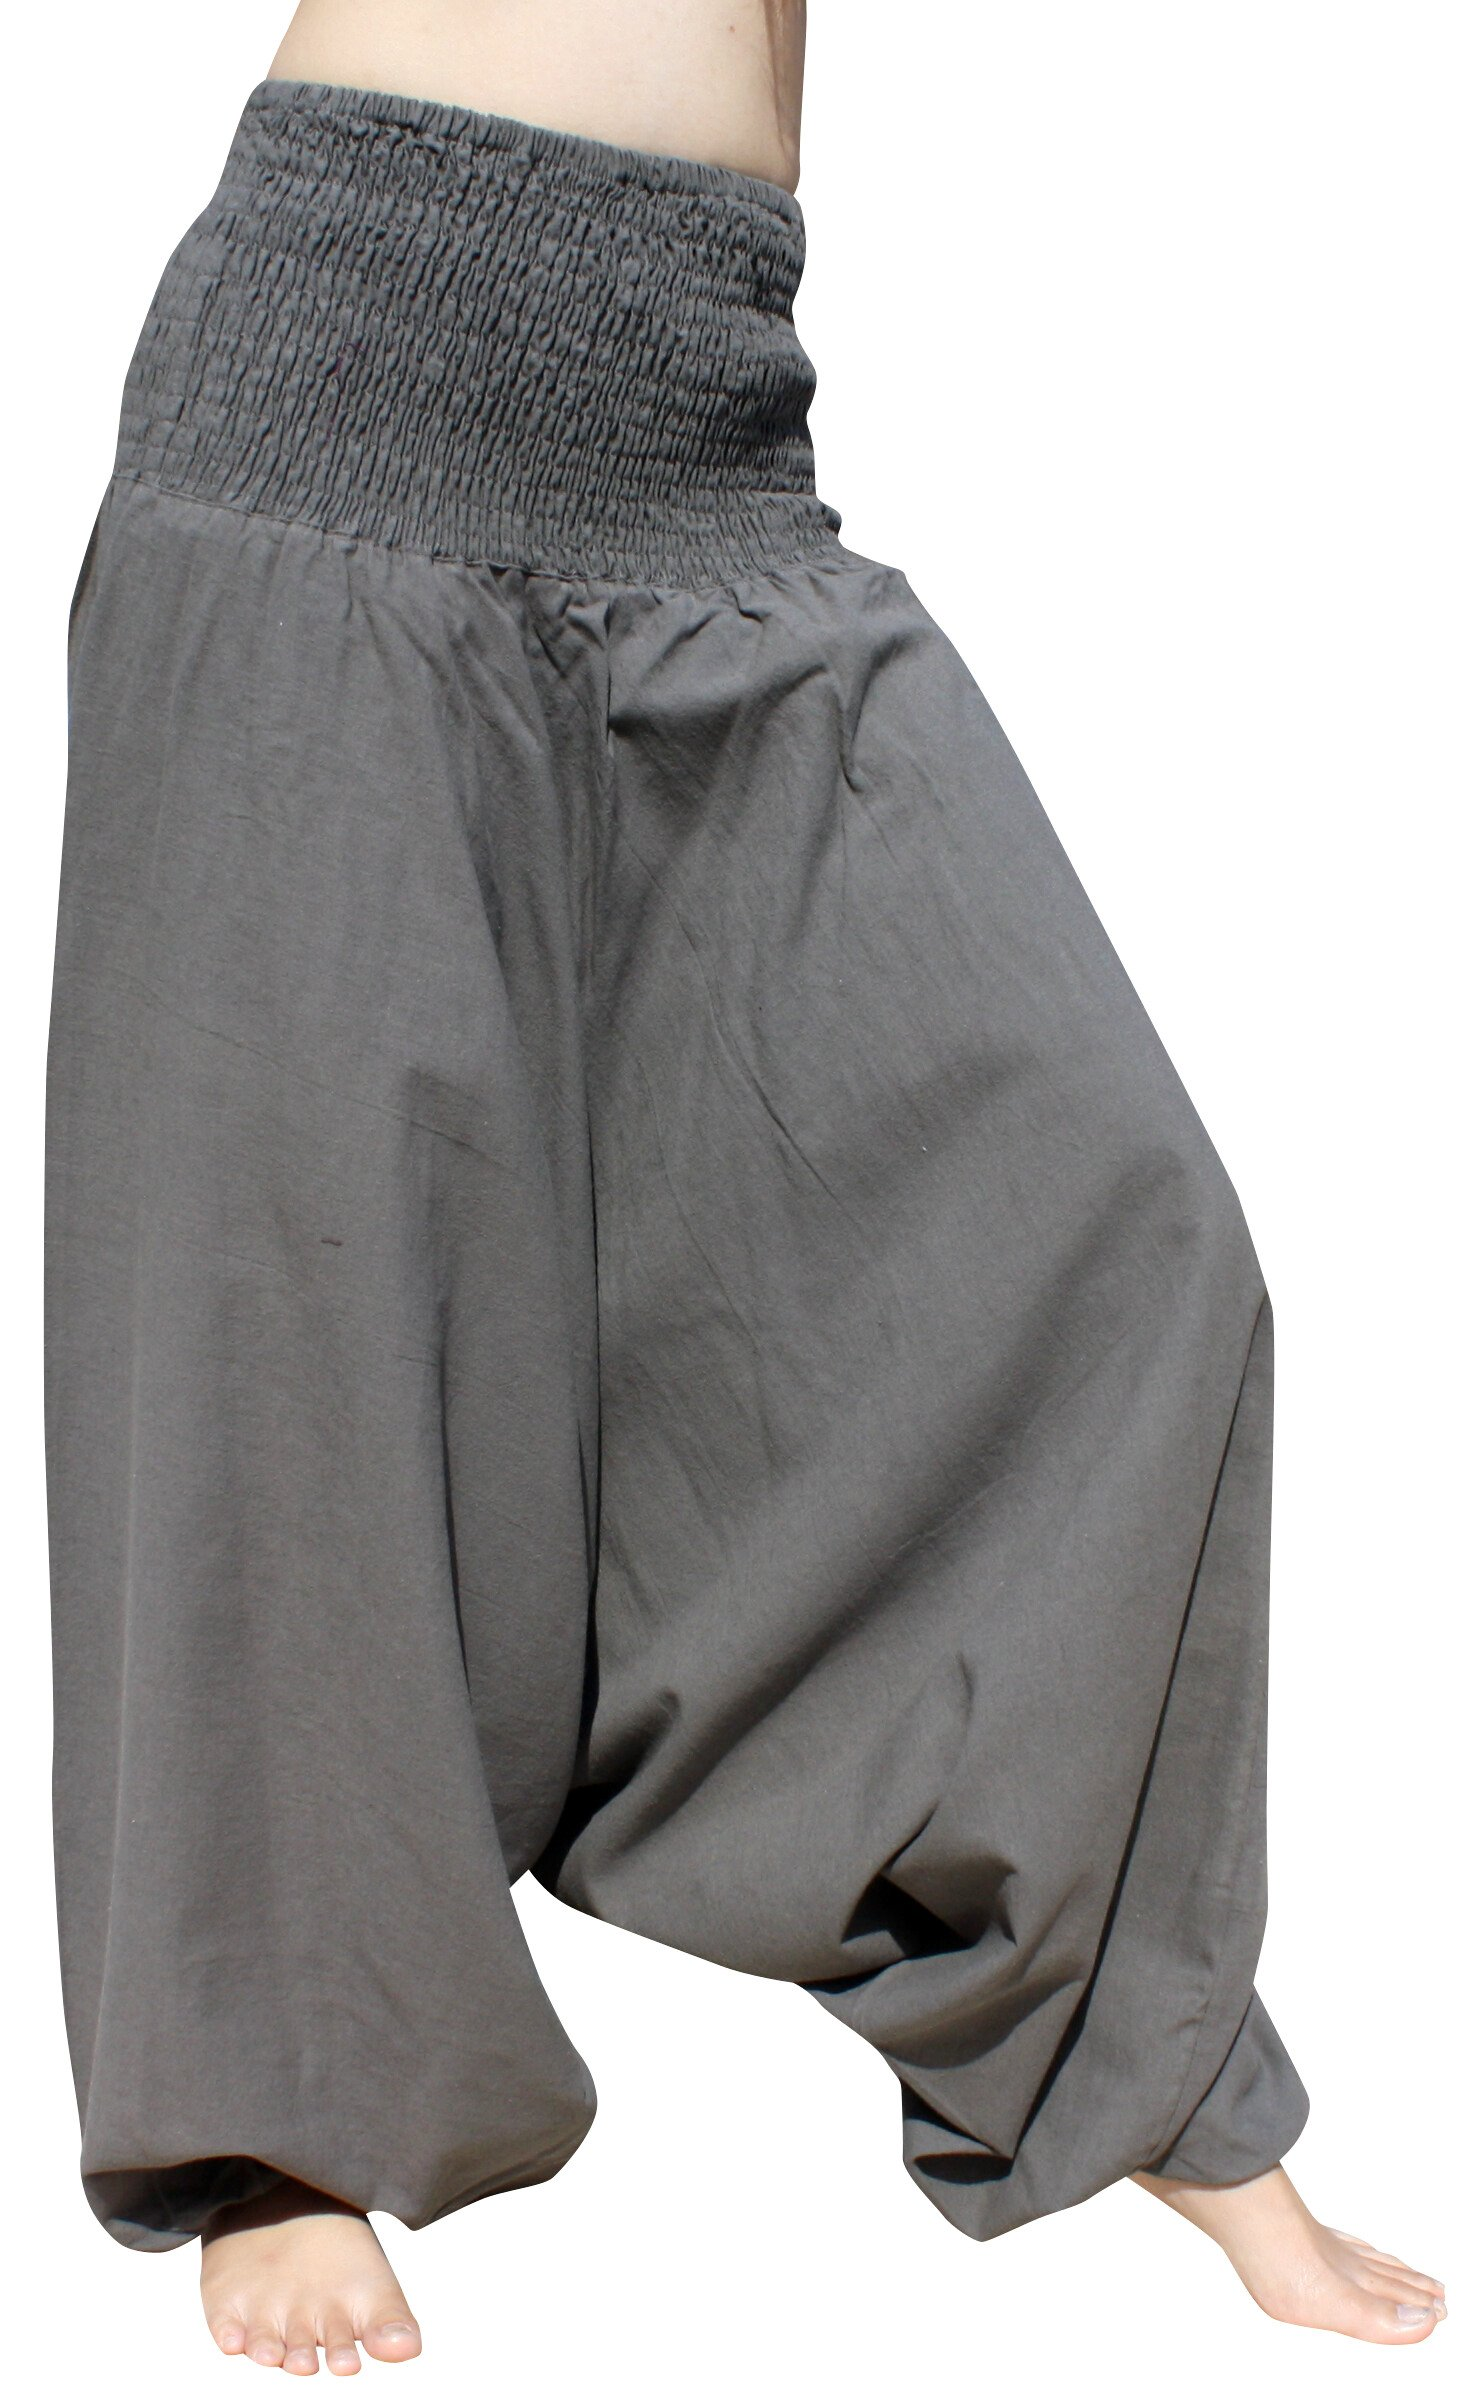 Raan Pah Muang Brand Light Summer Cotton Smock Top Harem Aladdin Pants, Large, Gray